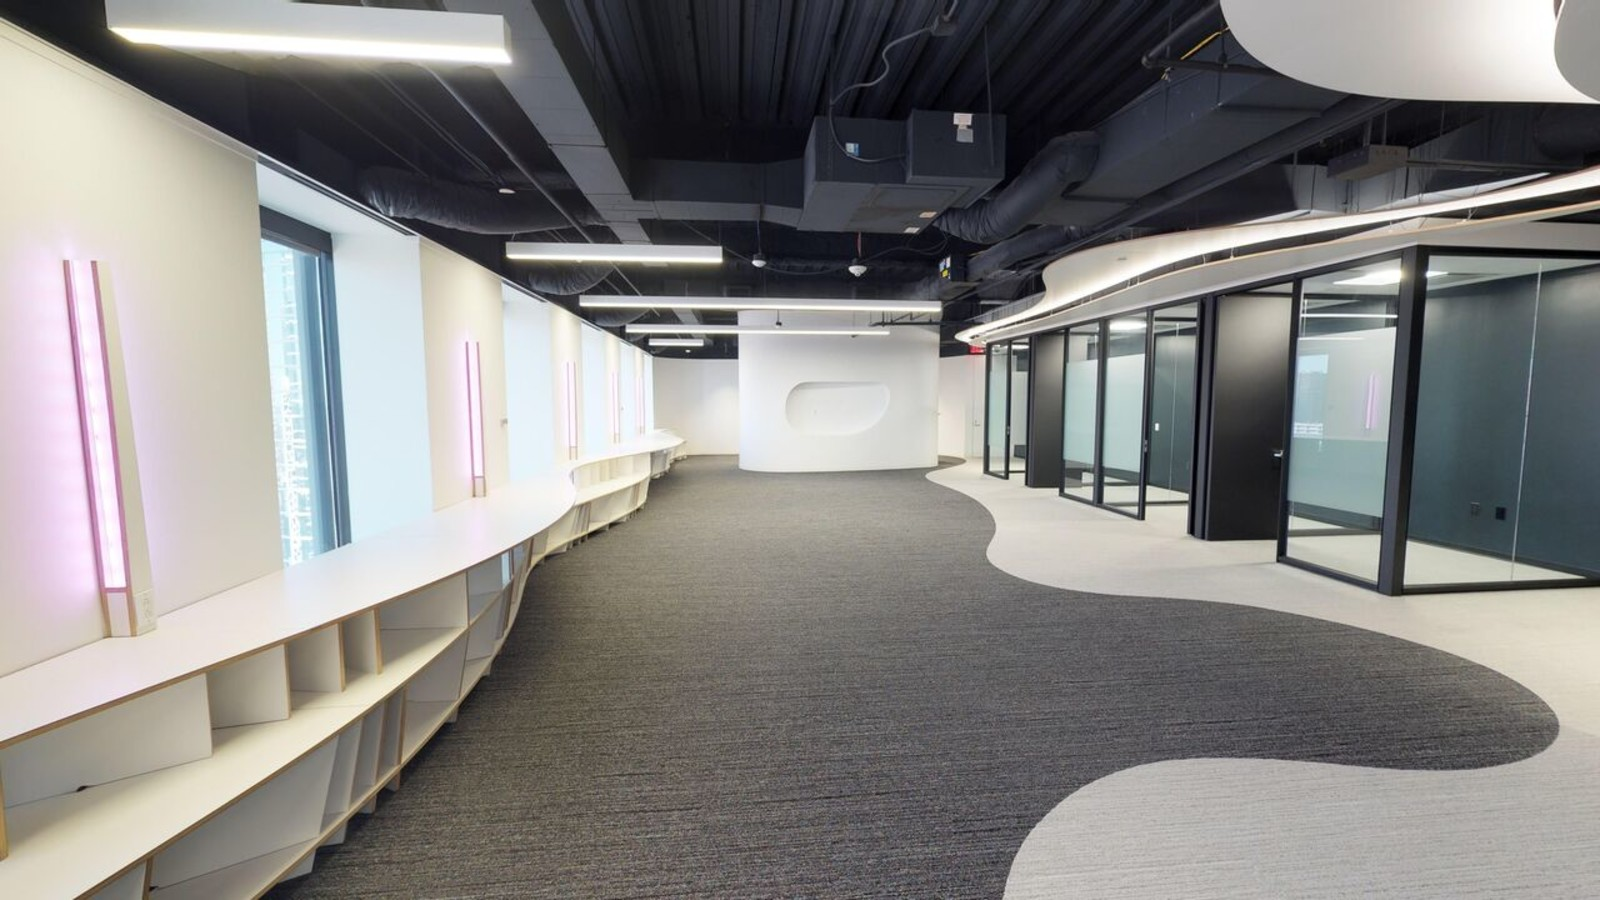 tour an office space in houston with our virtualreality truss blog